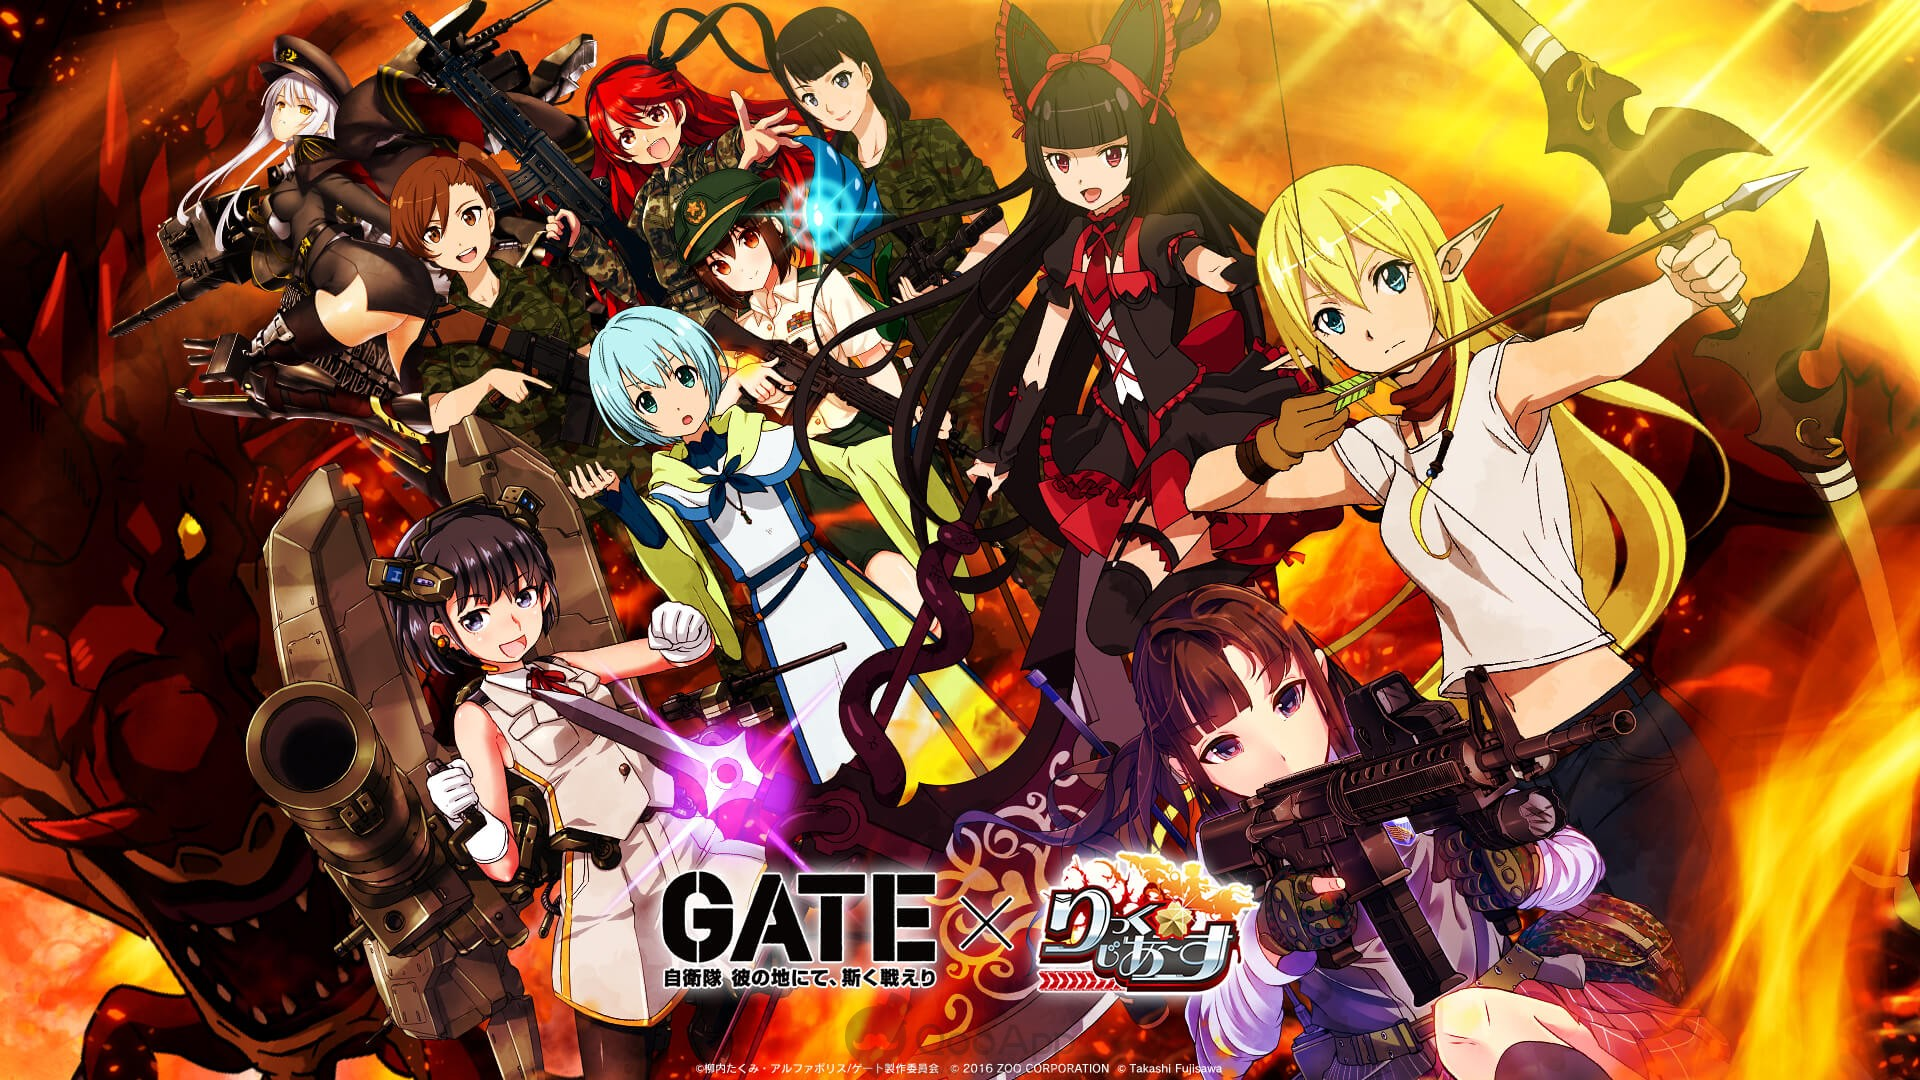 Mobile bishojo SLG Rick G Earth gets new girls from TV anime Gate